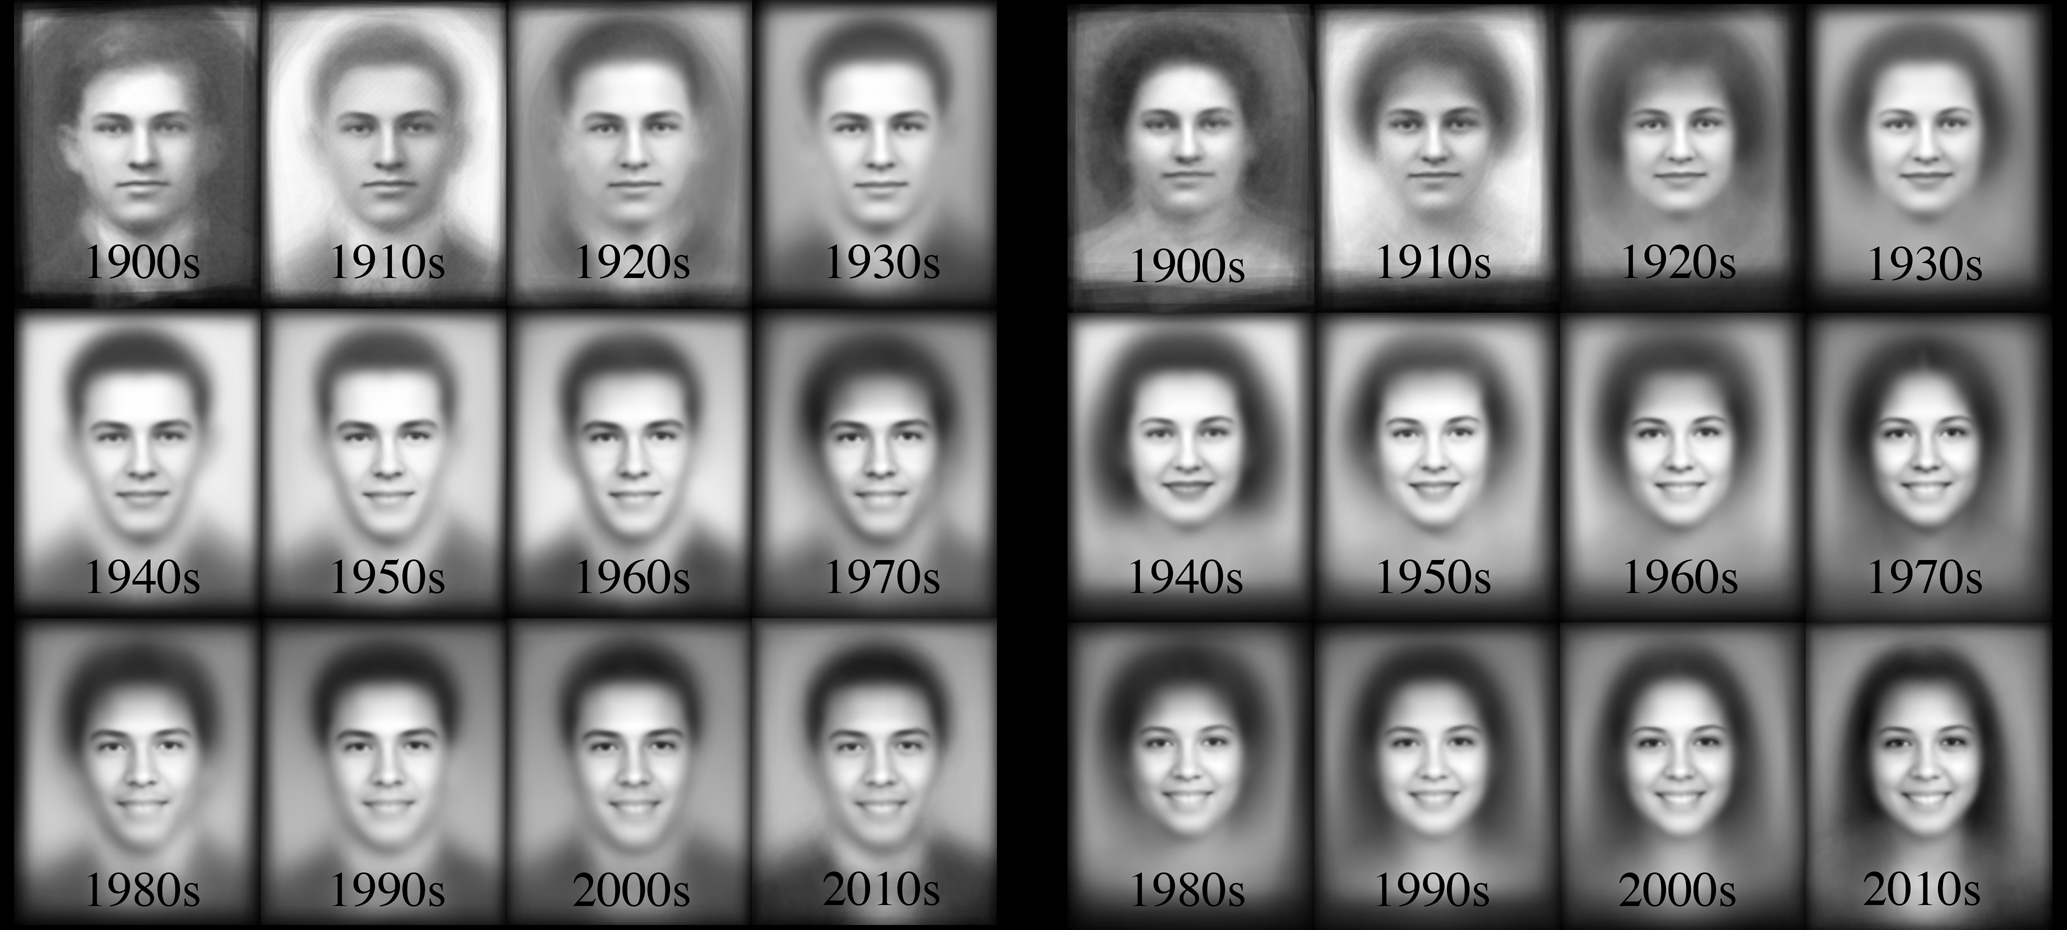 decade average images for the 20th century